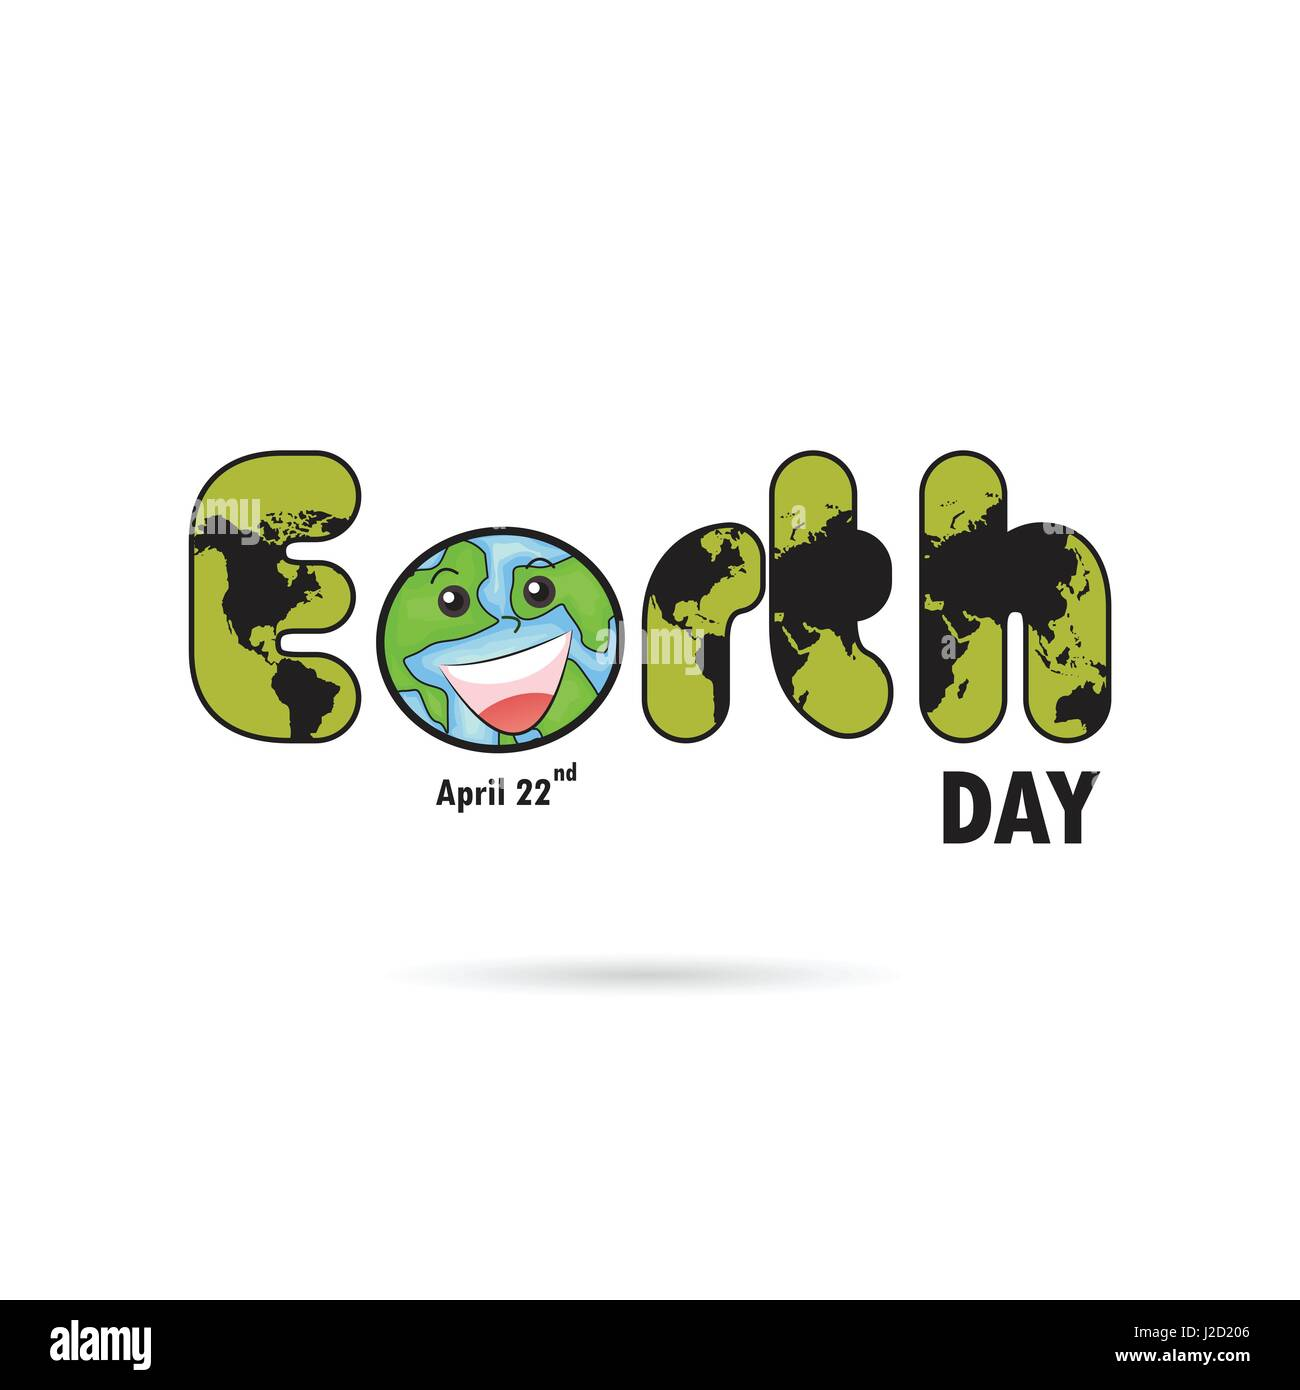 Green earth day typographical design elements happy earth day green earth day typographical design elements happy earth day lettering iconhappy earth day logotype symbolsign for greeting cardposterflyerco buycottarizona